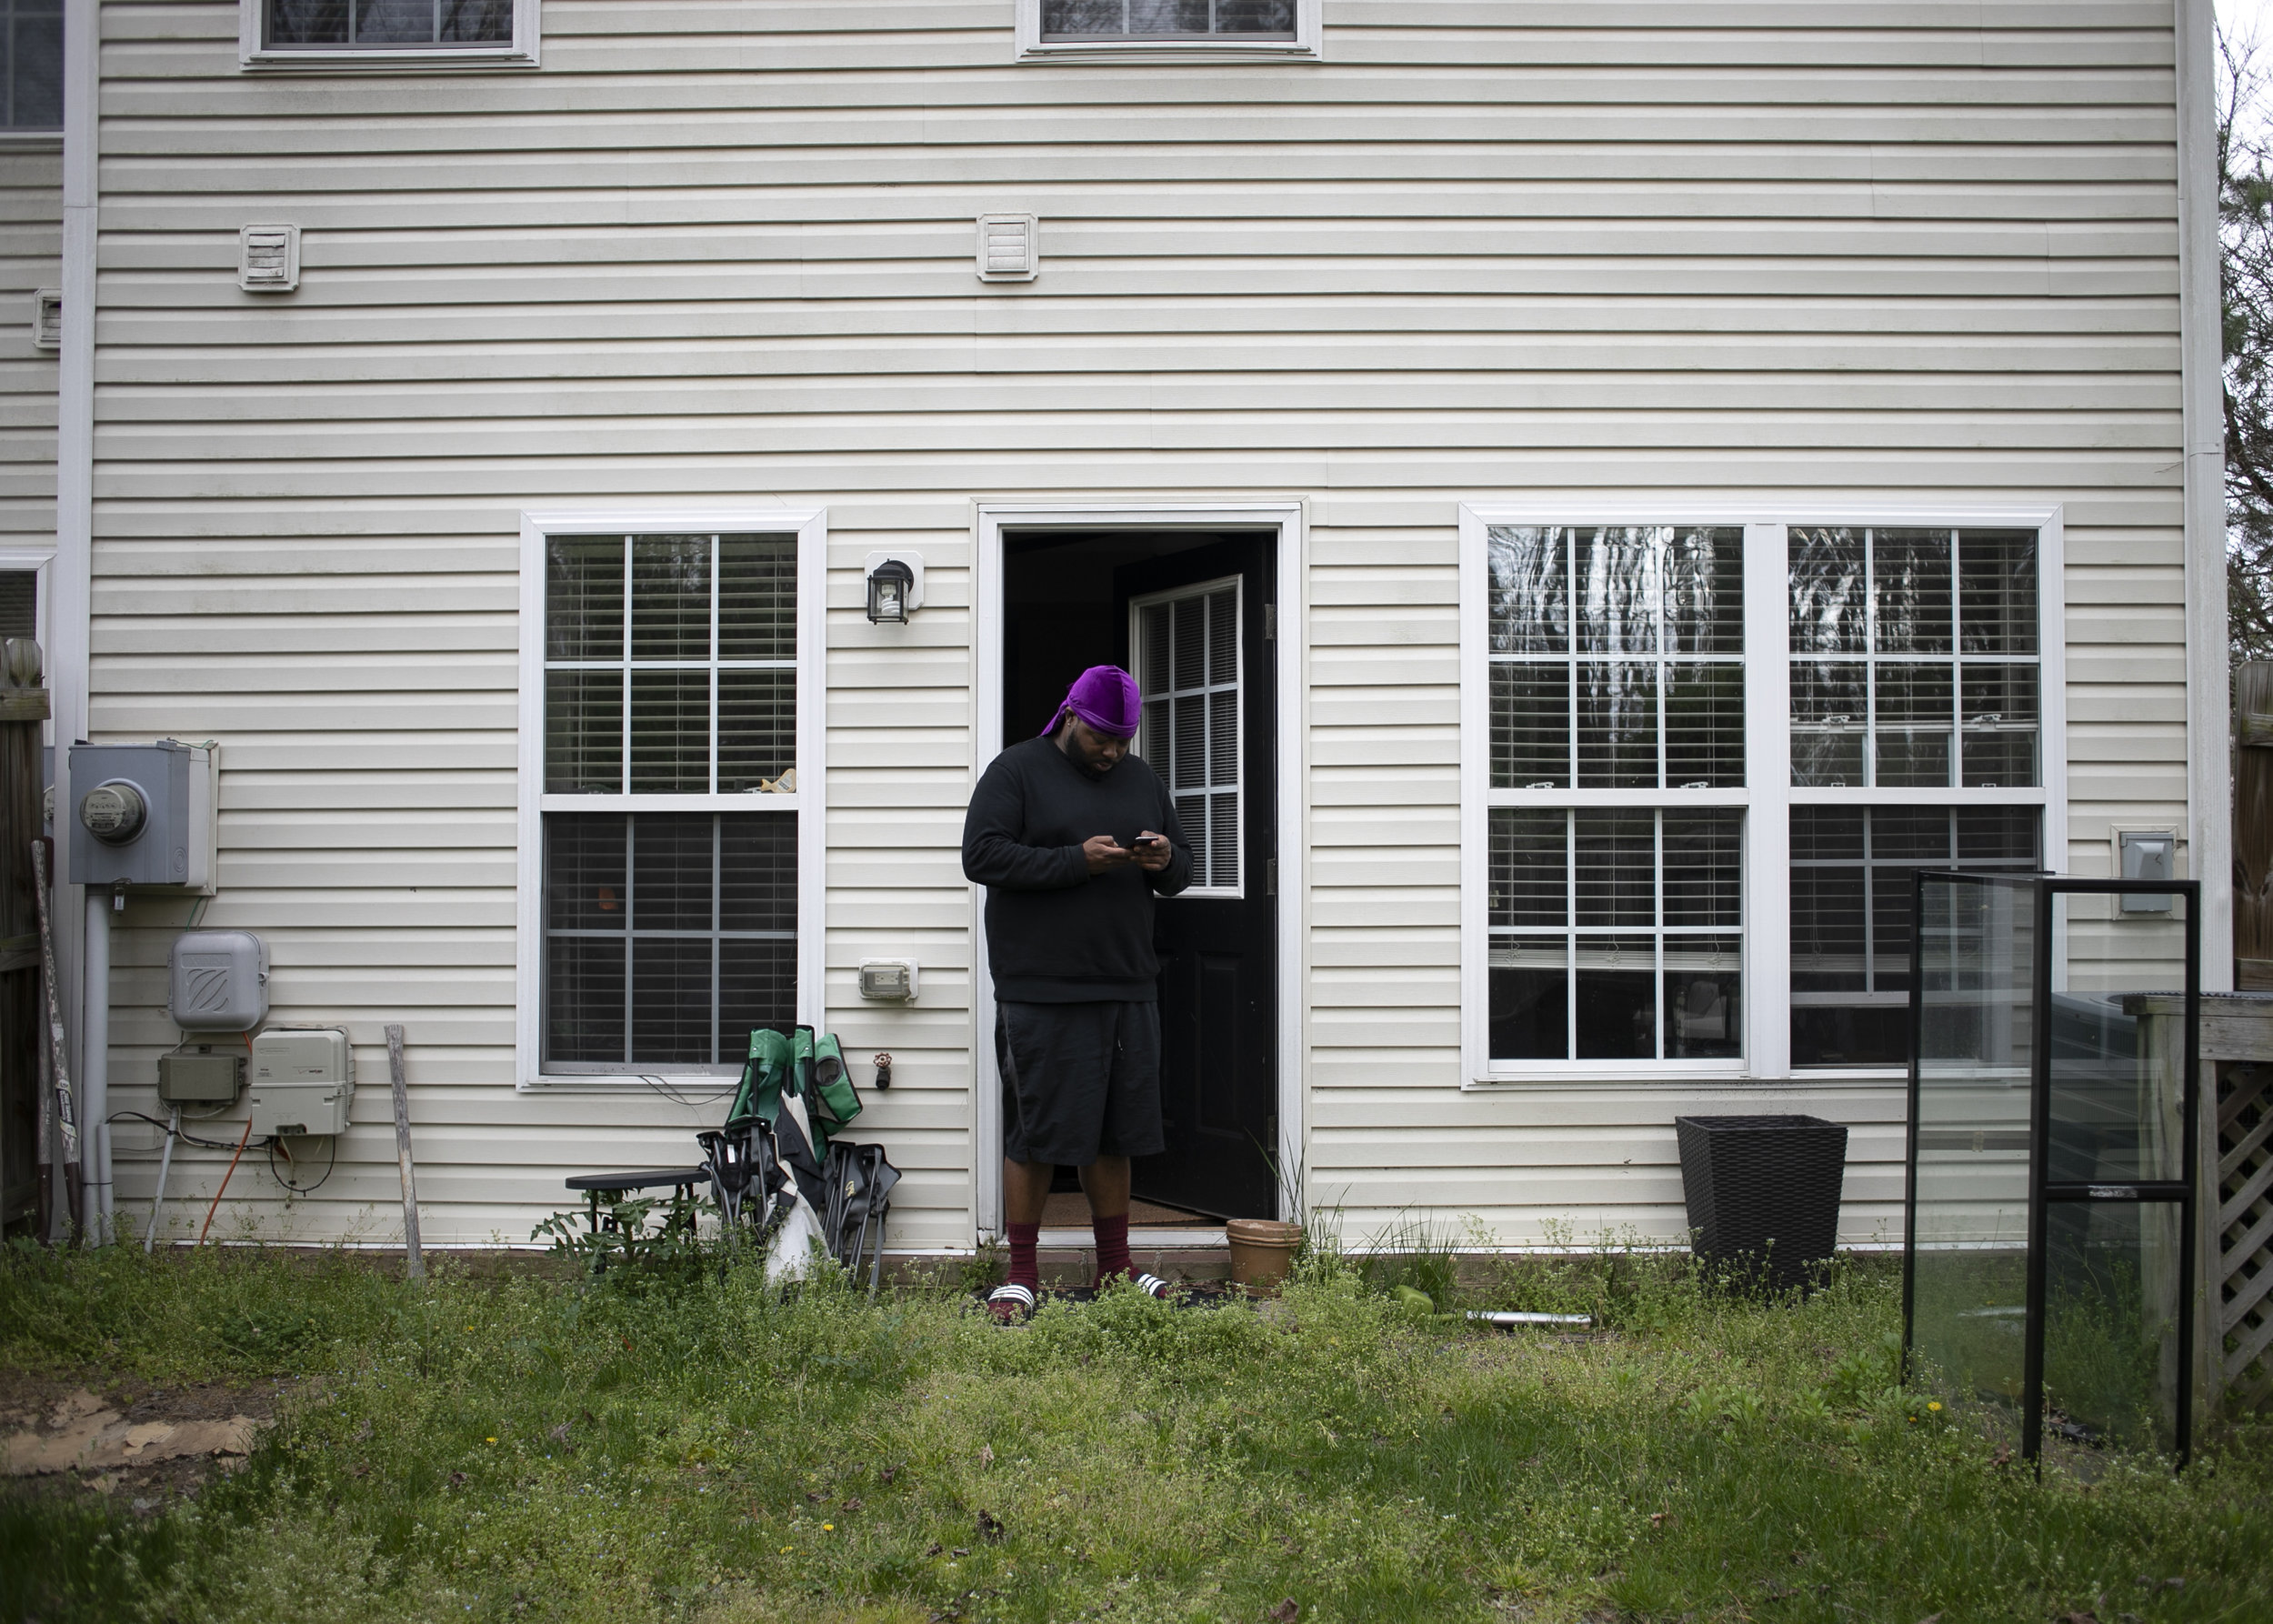 Mike stands at the back door of his house while answering a text and getting some fresh air on April 7, 2019 in Richmond, Virginia.